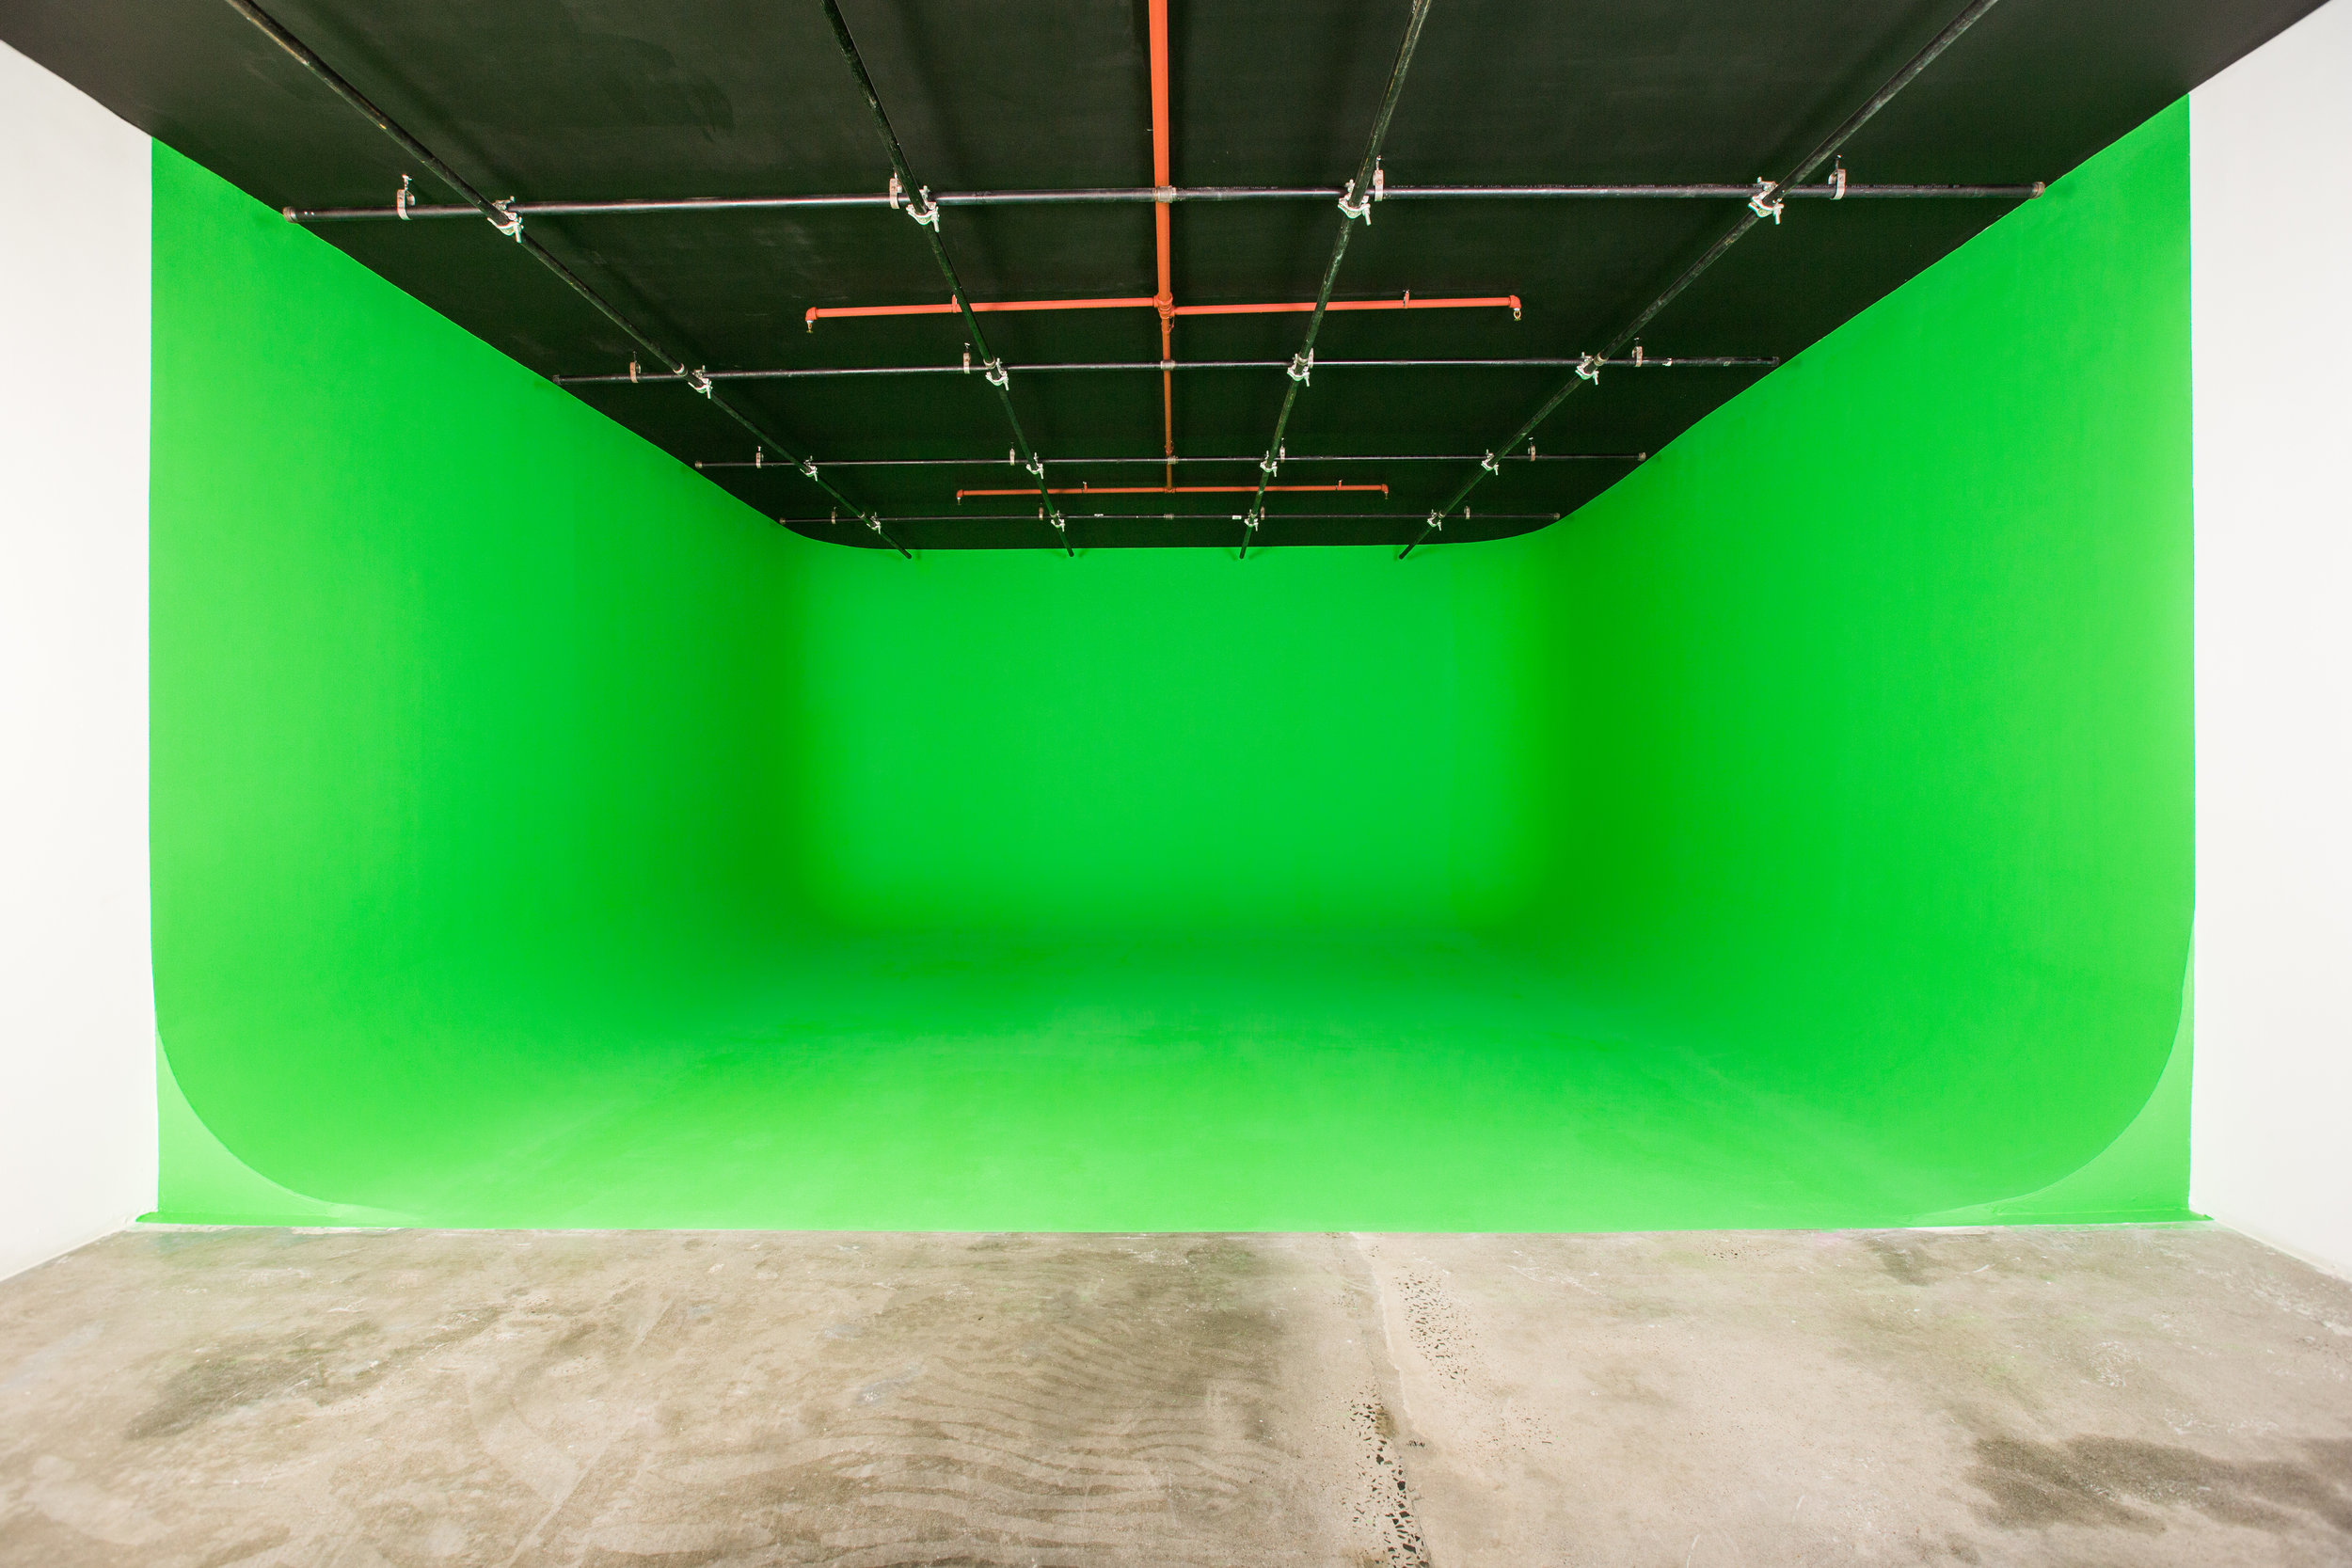 green-screen-cyc-studio-nyc.jpg